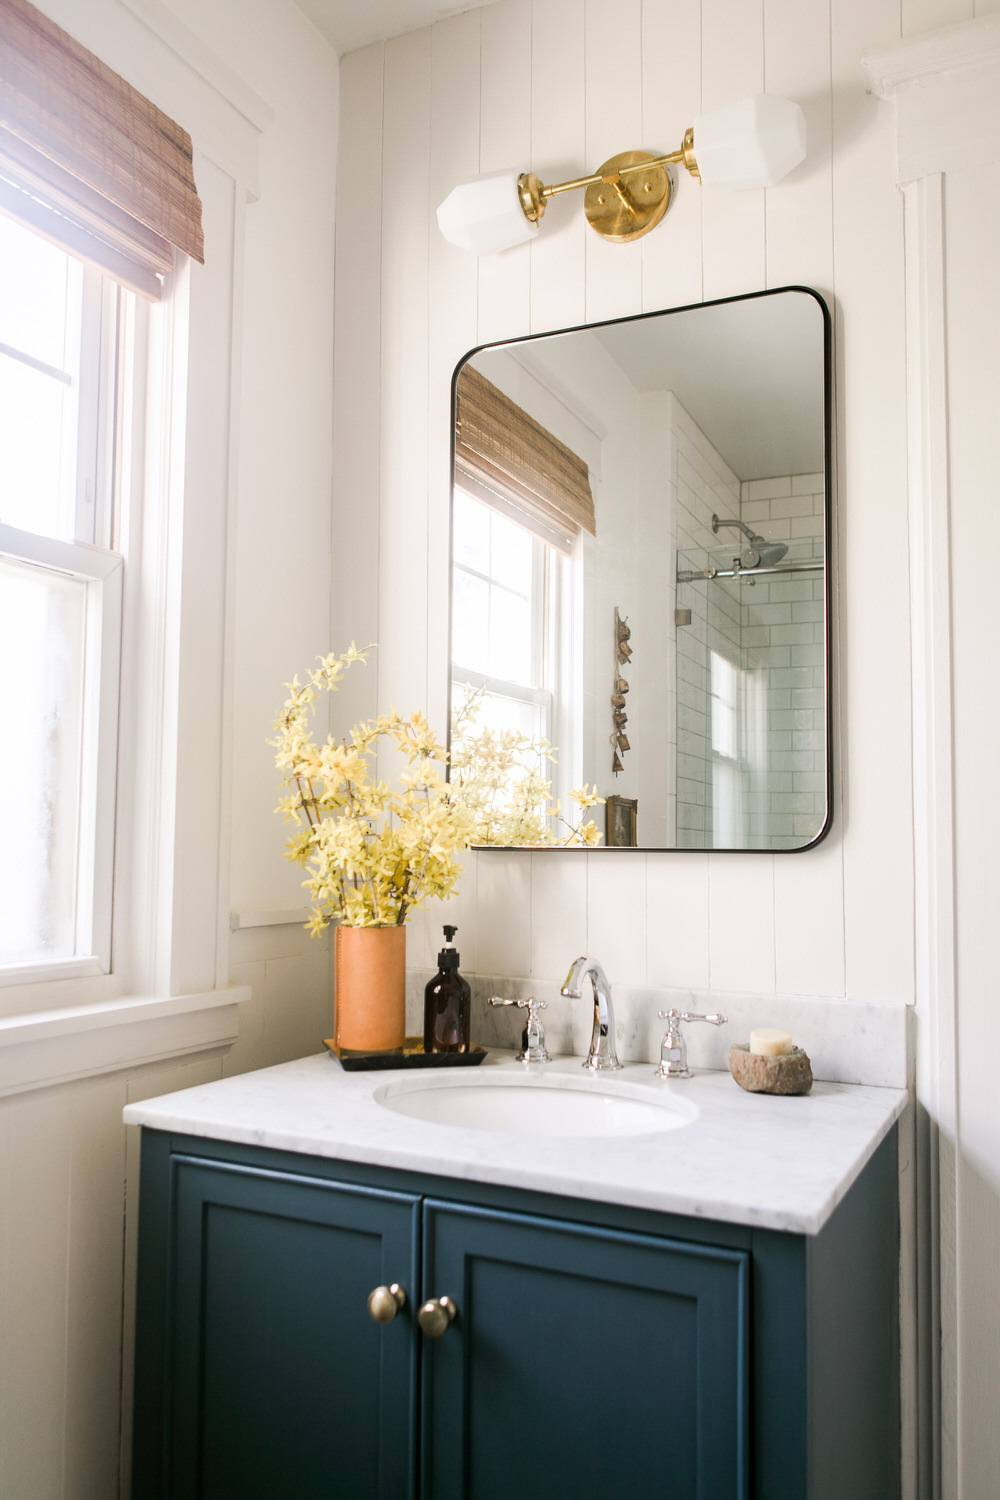 Our Warm Neutral Bathroom Refresh with DIY Wall Paneling ⋆ Ruffled